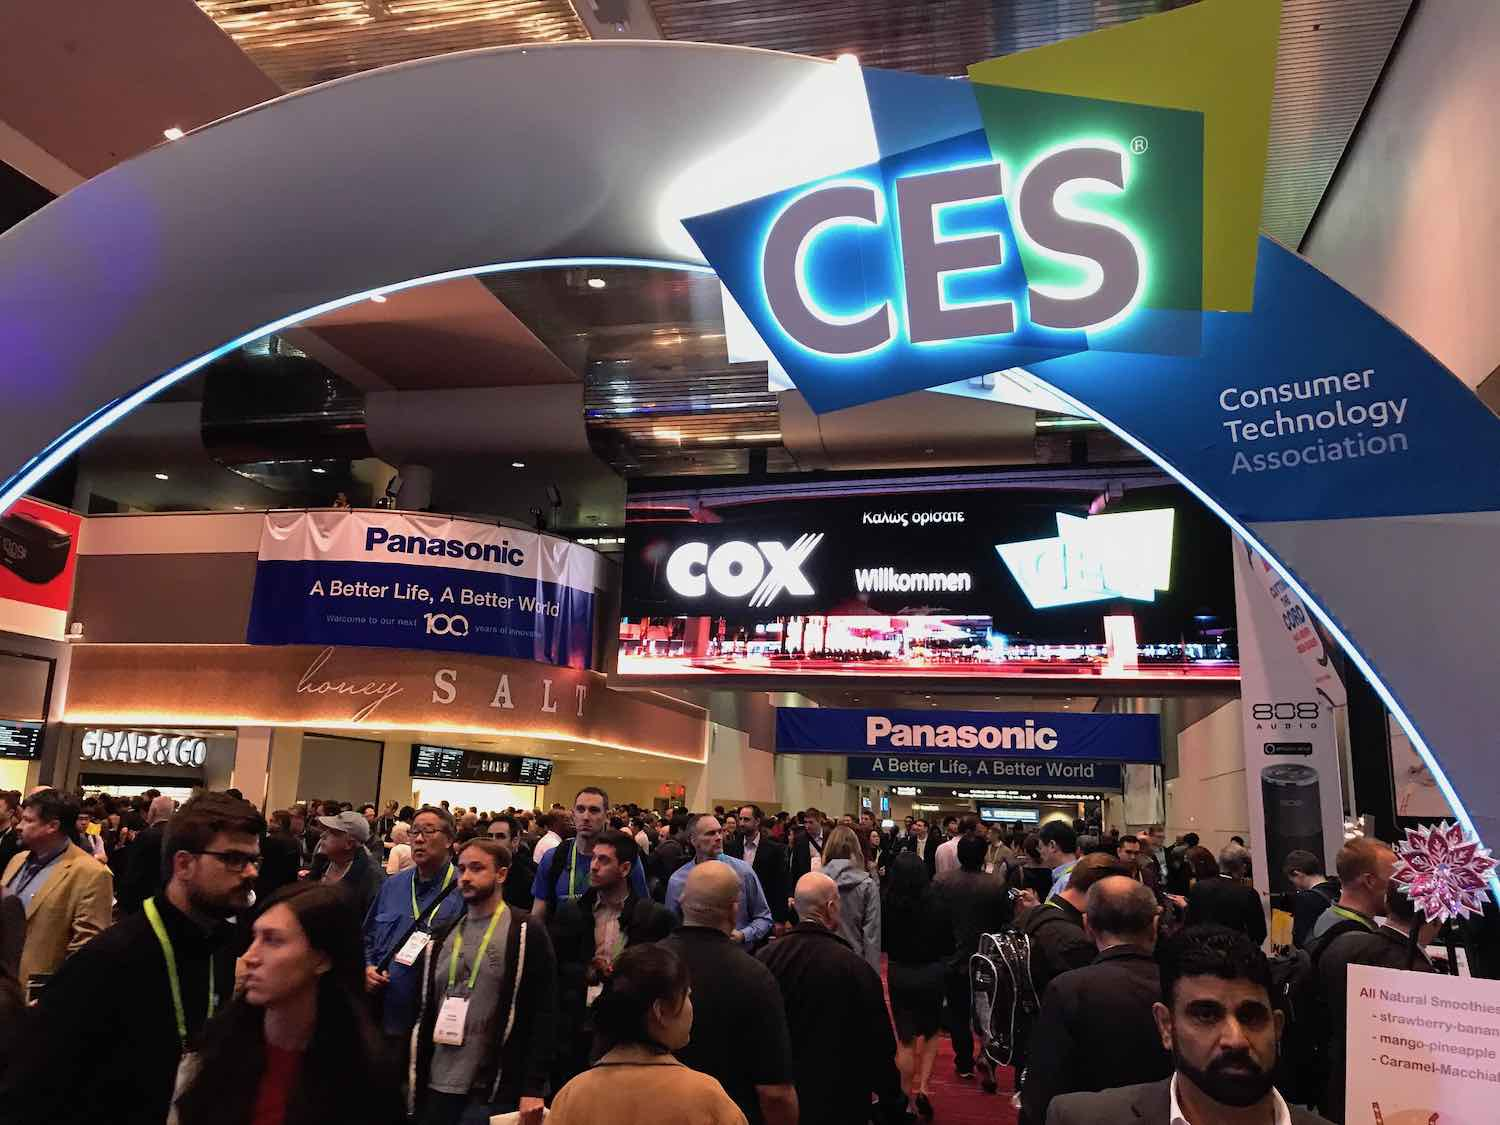 CES Las Vegas - Photo by Ryan Boyles, Creative Commons.